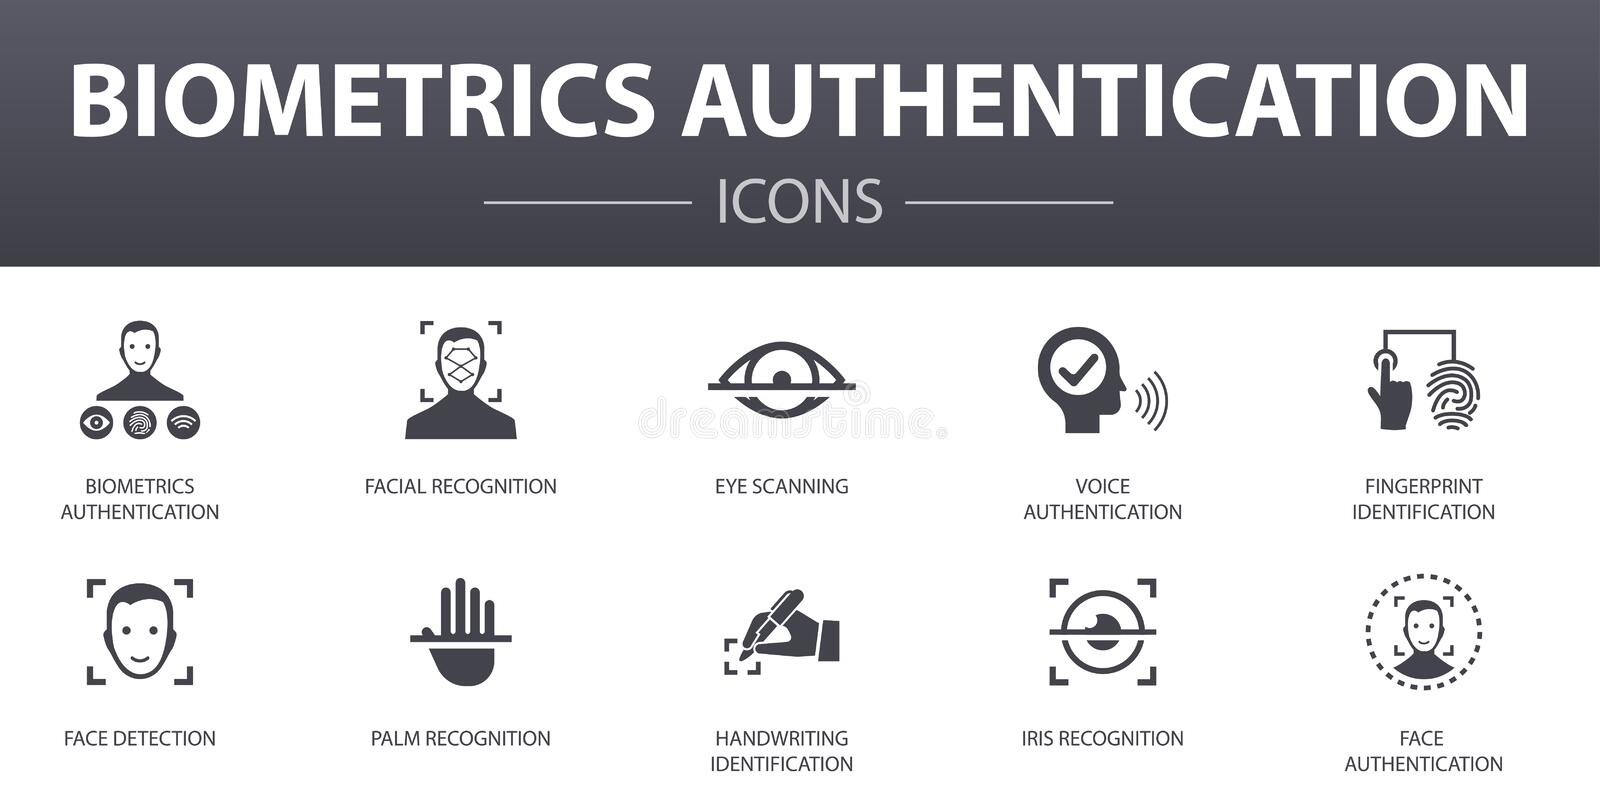 Biometrics authentication simple concept. Icons set. Contains such icons as facial recognition, face detection, fingerprint identification, palm recognition and royalty free illustration